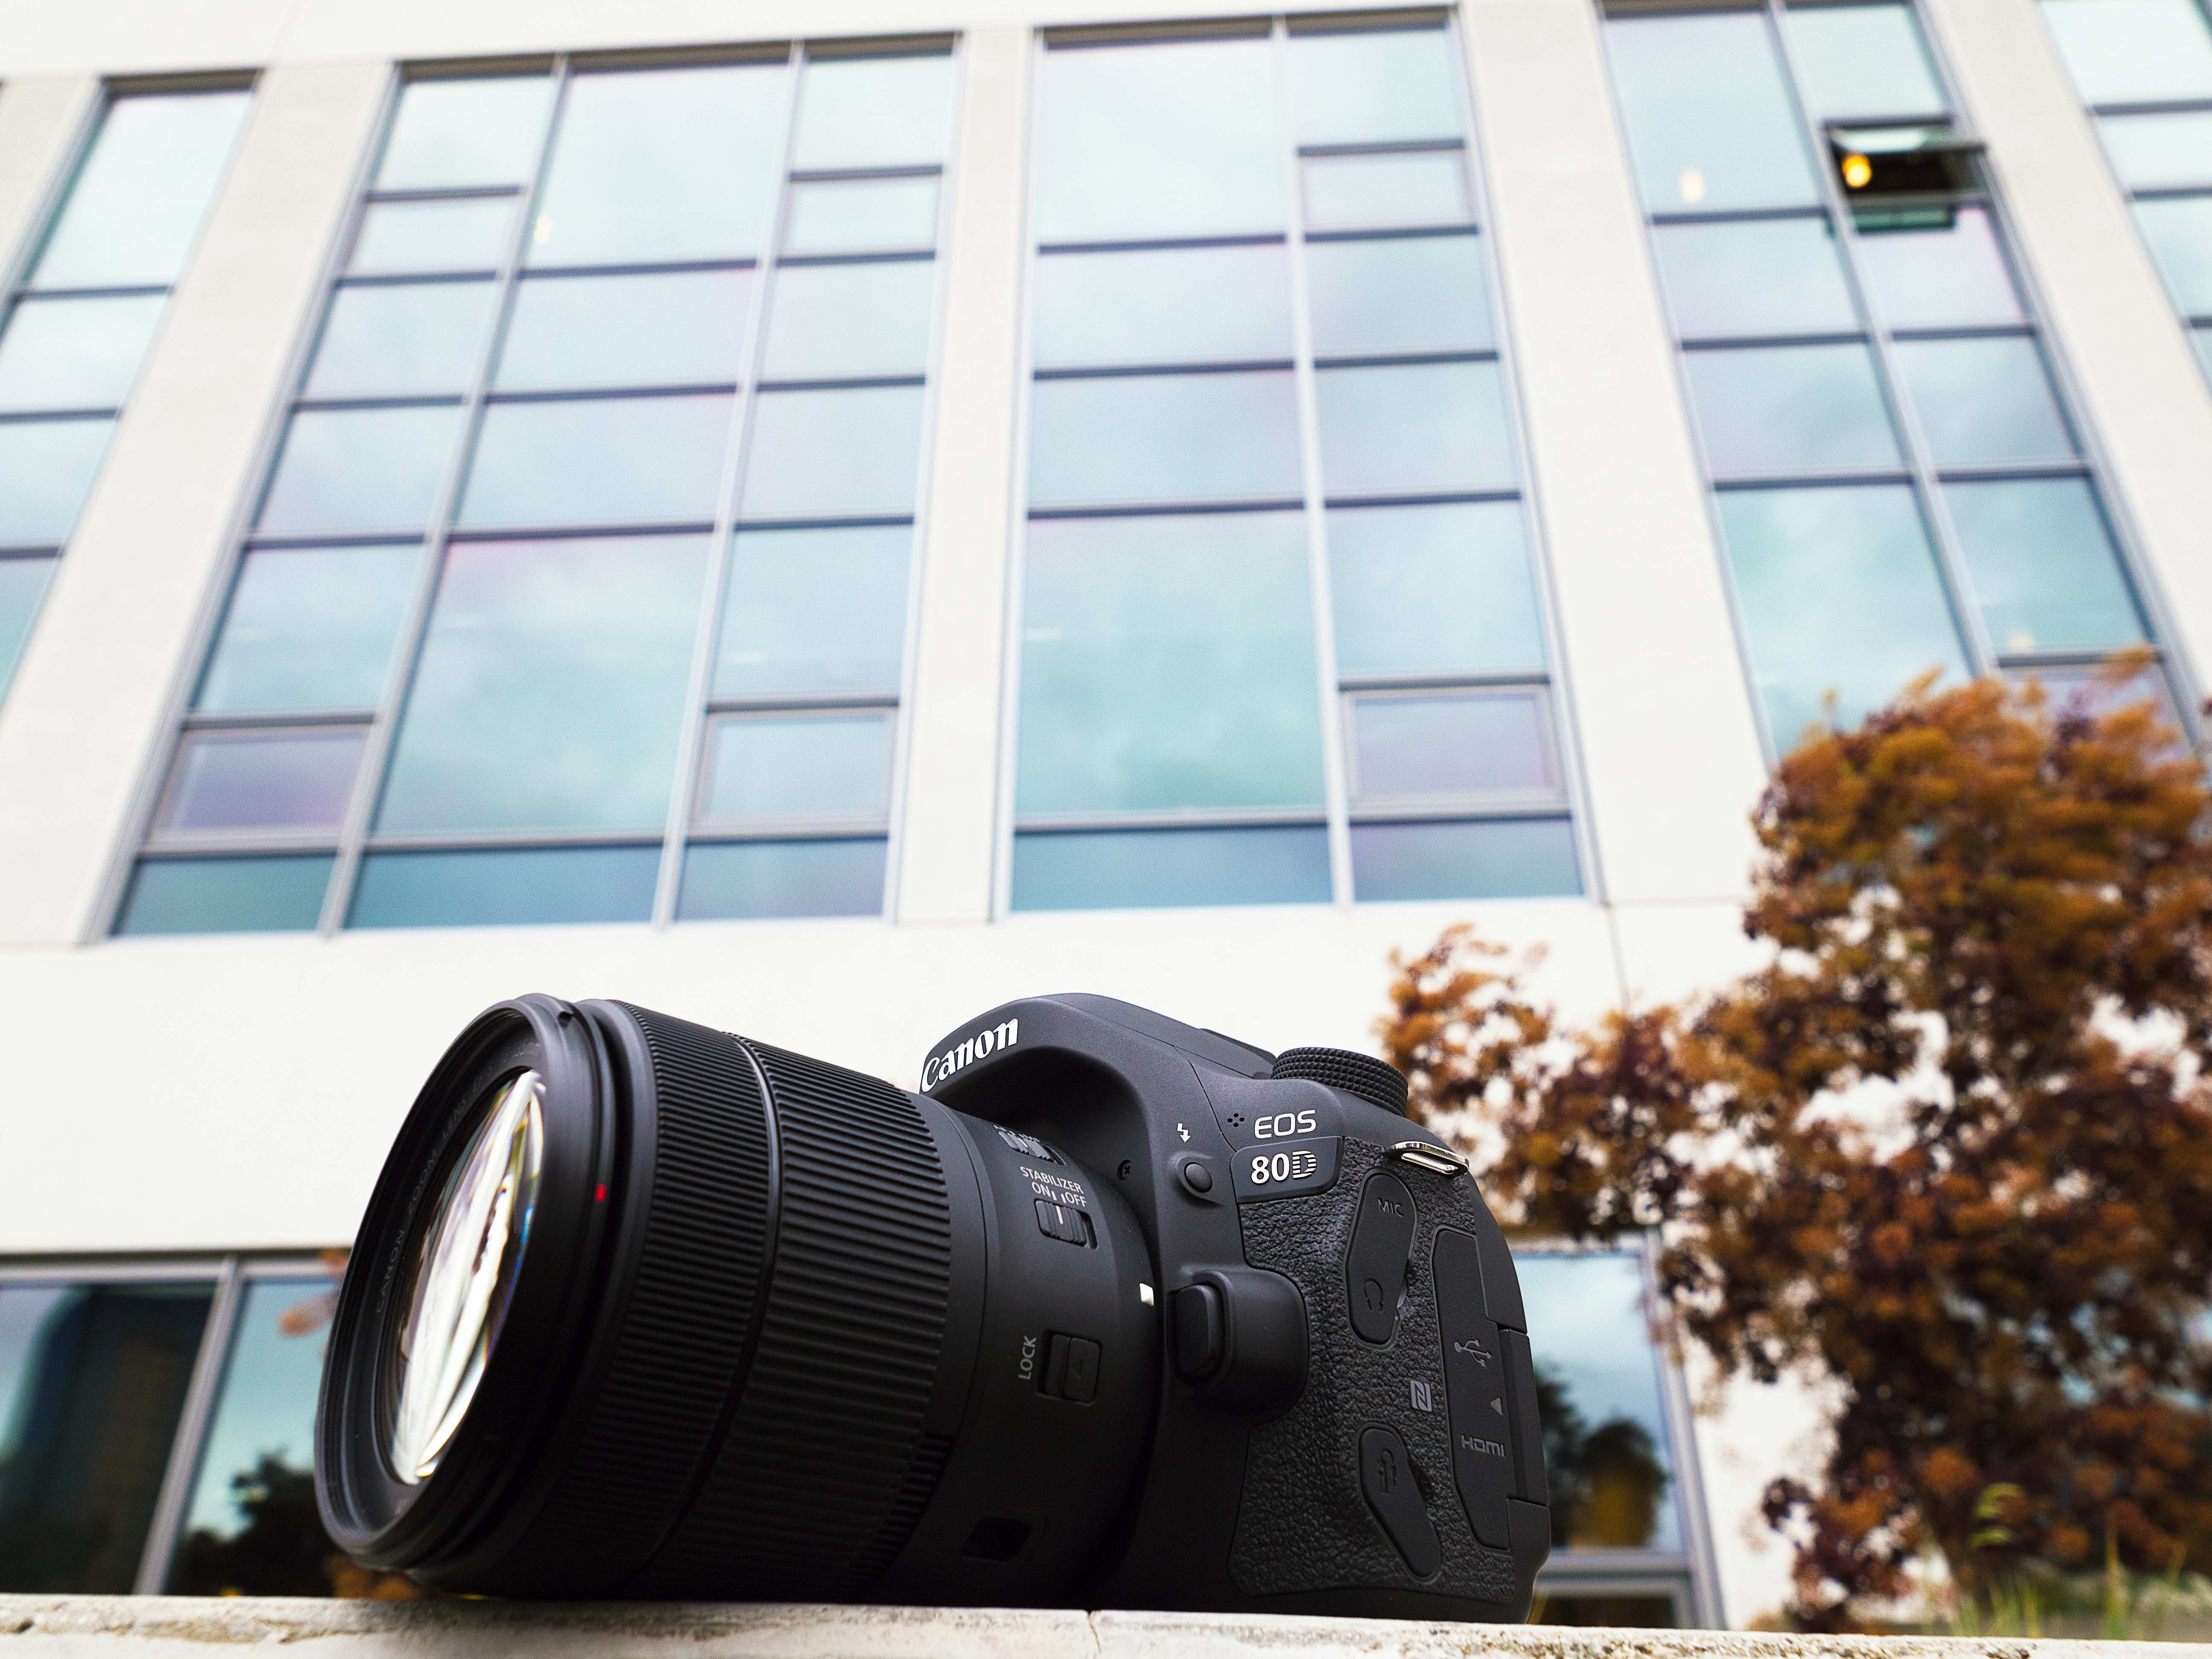 The Canon that can Canon EOS 80D Review Digital graphy Review